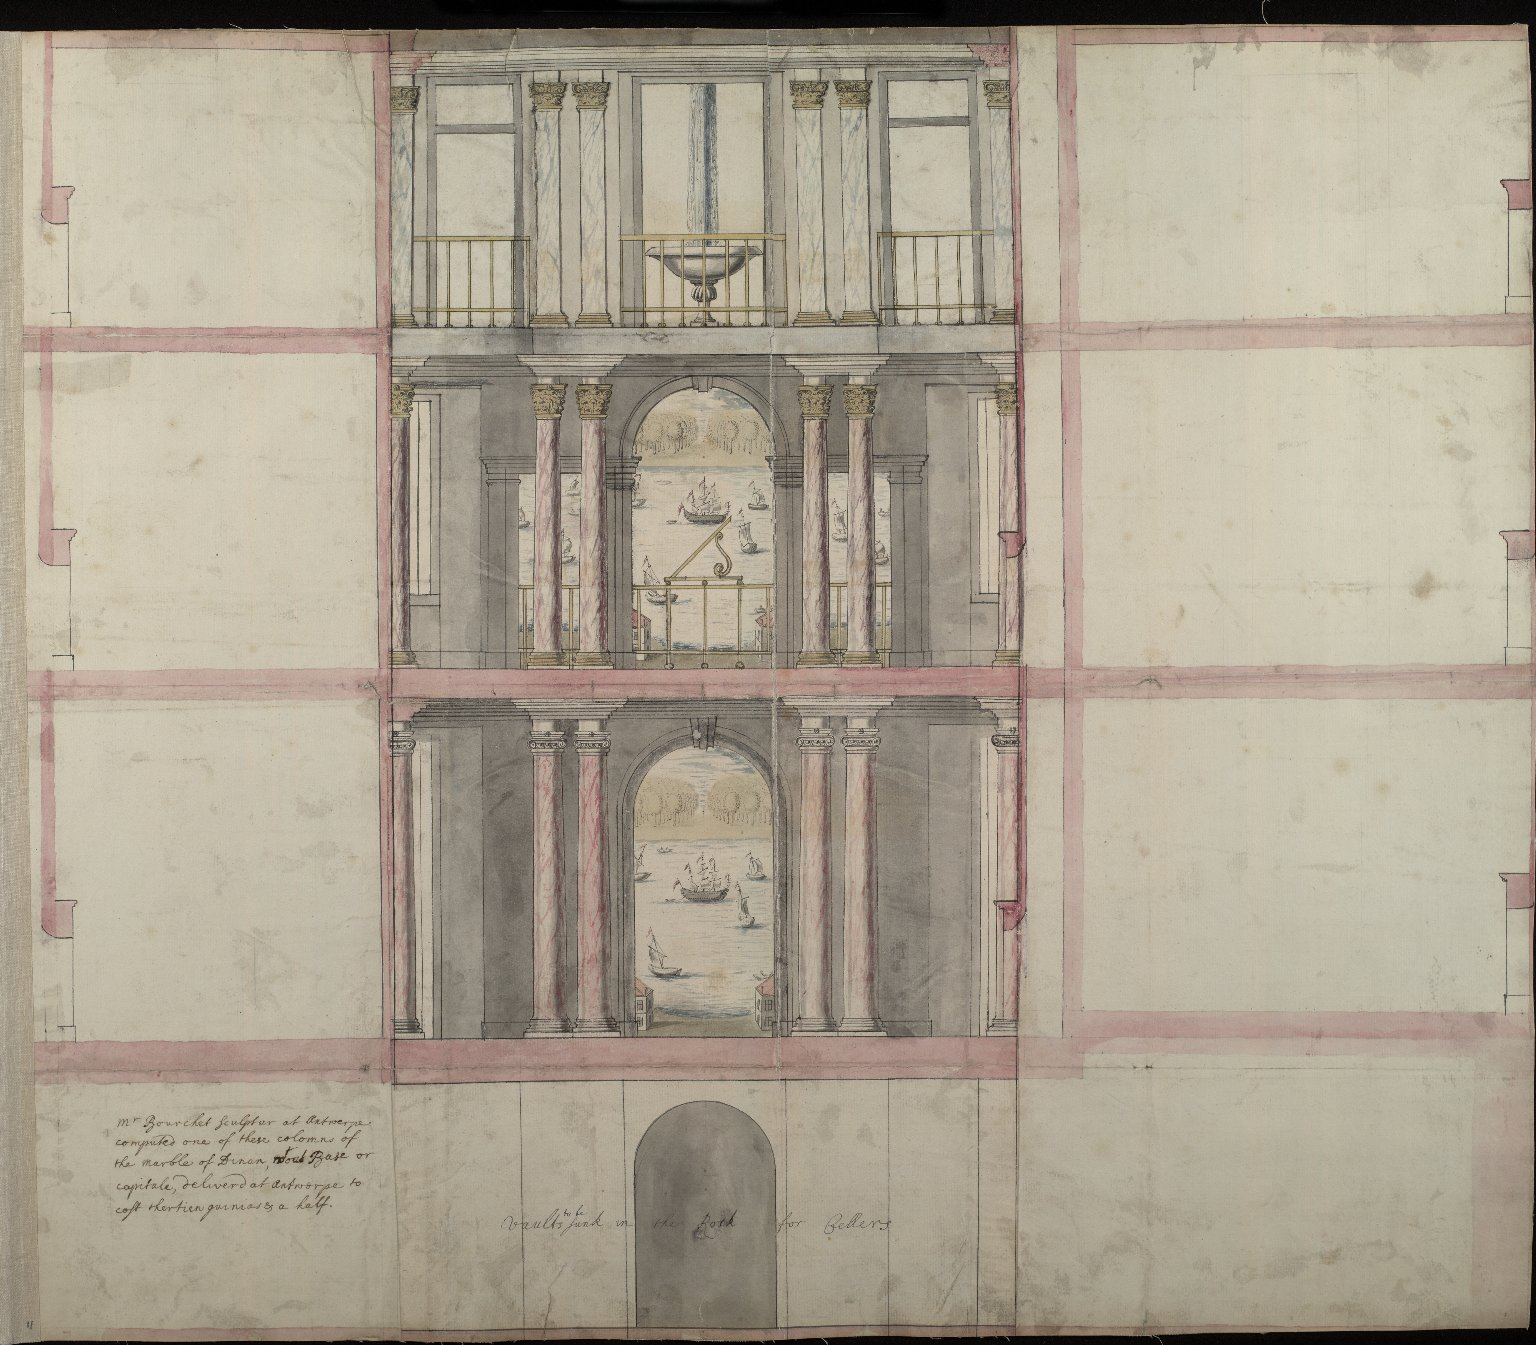 [Elevation of part of the interior of the house at Alloa] [1 of 1]